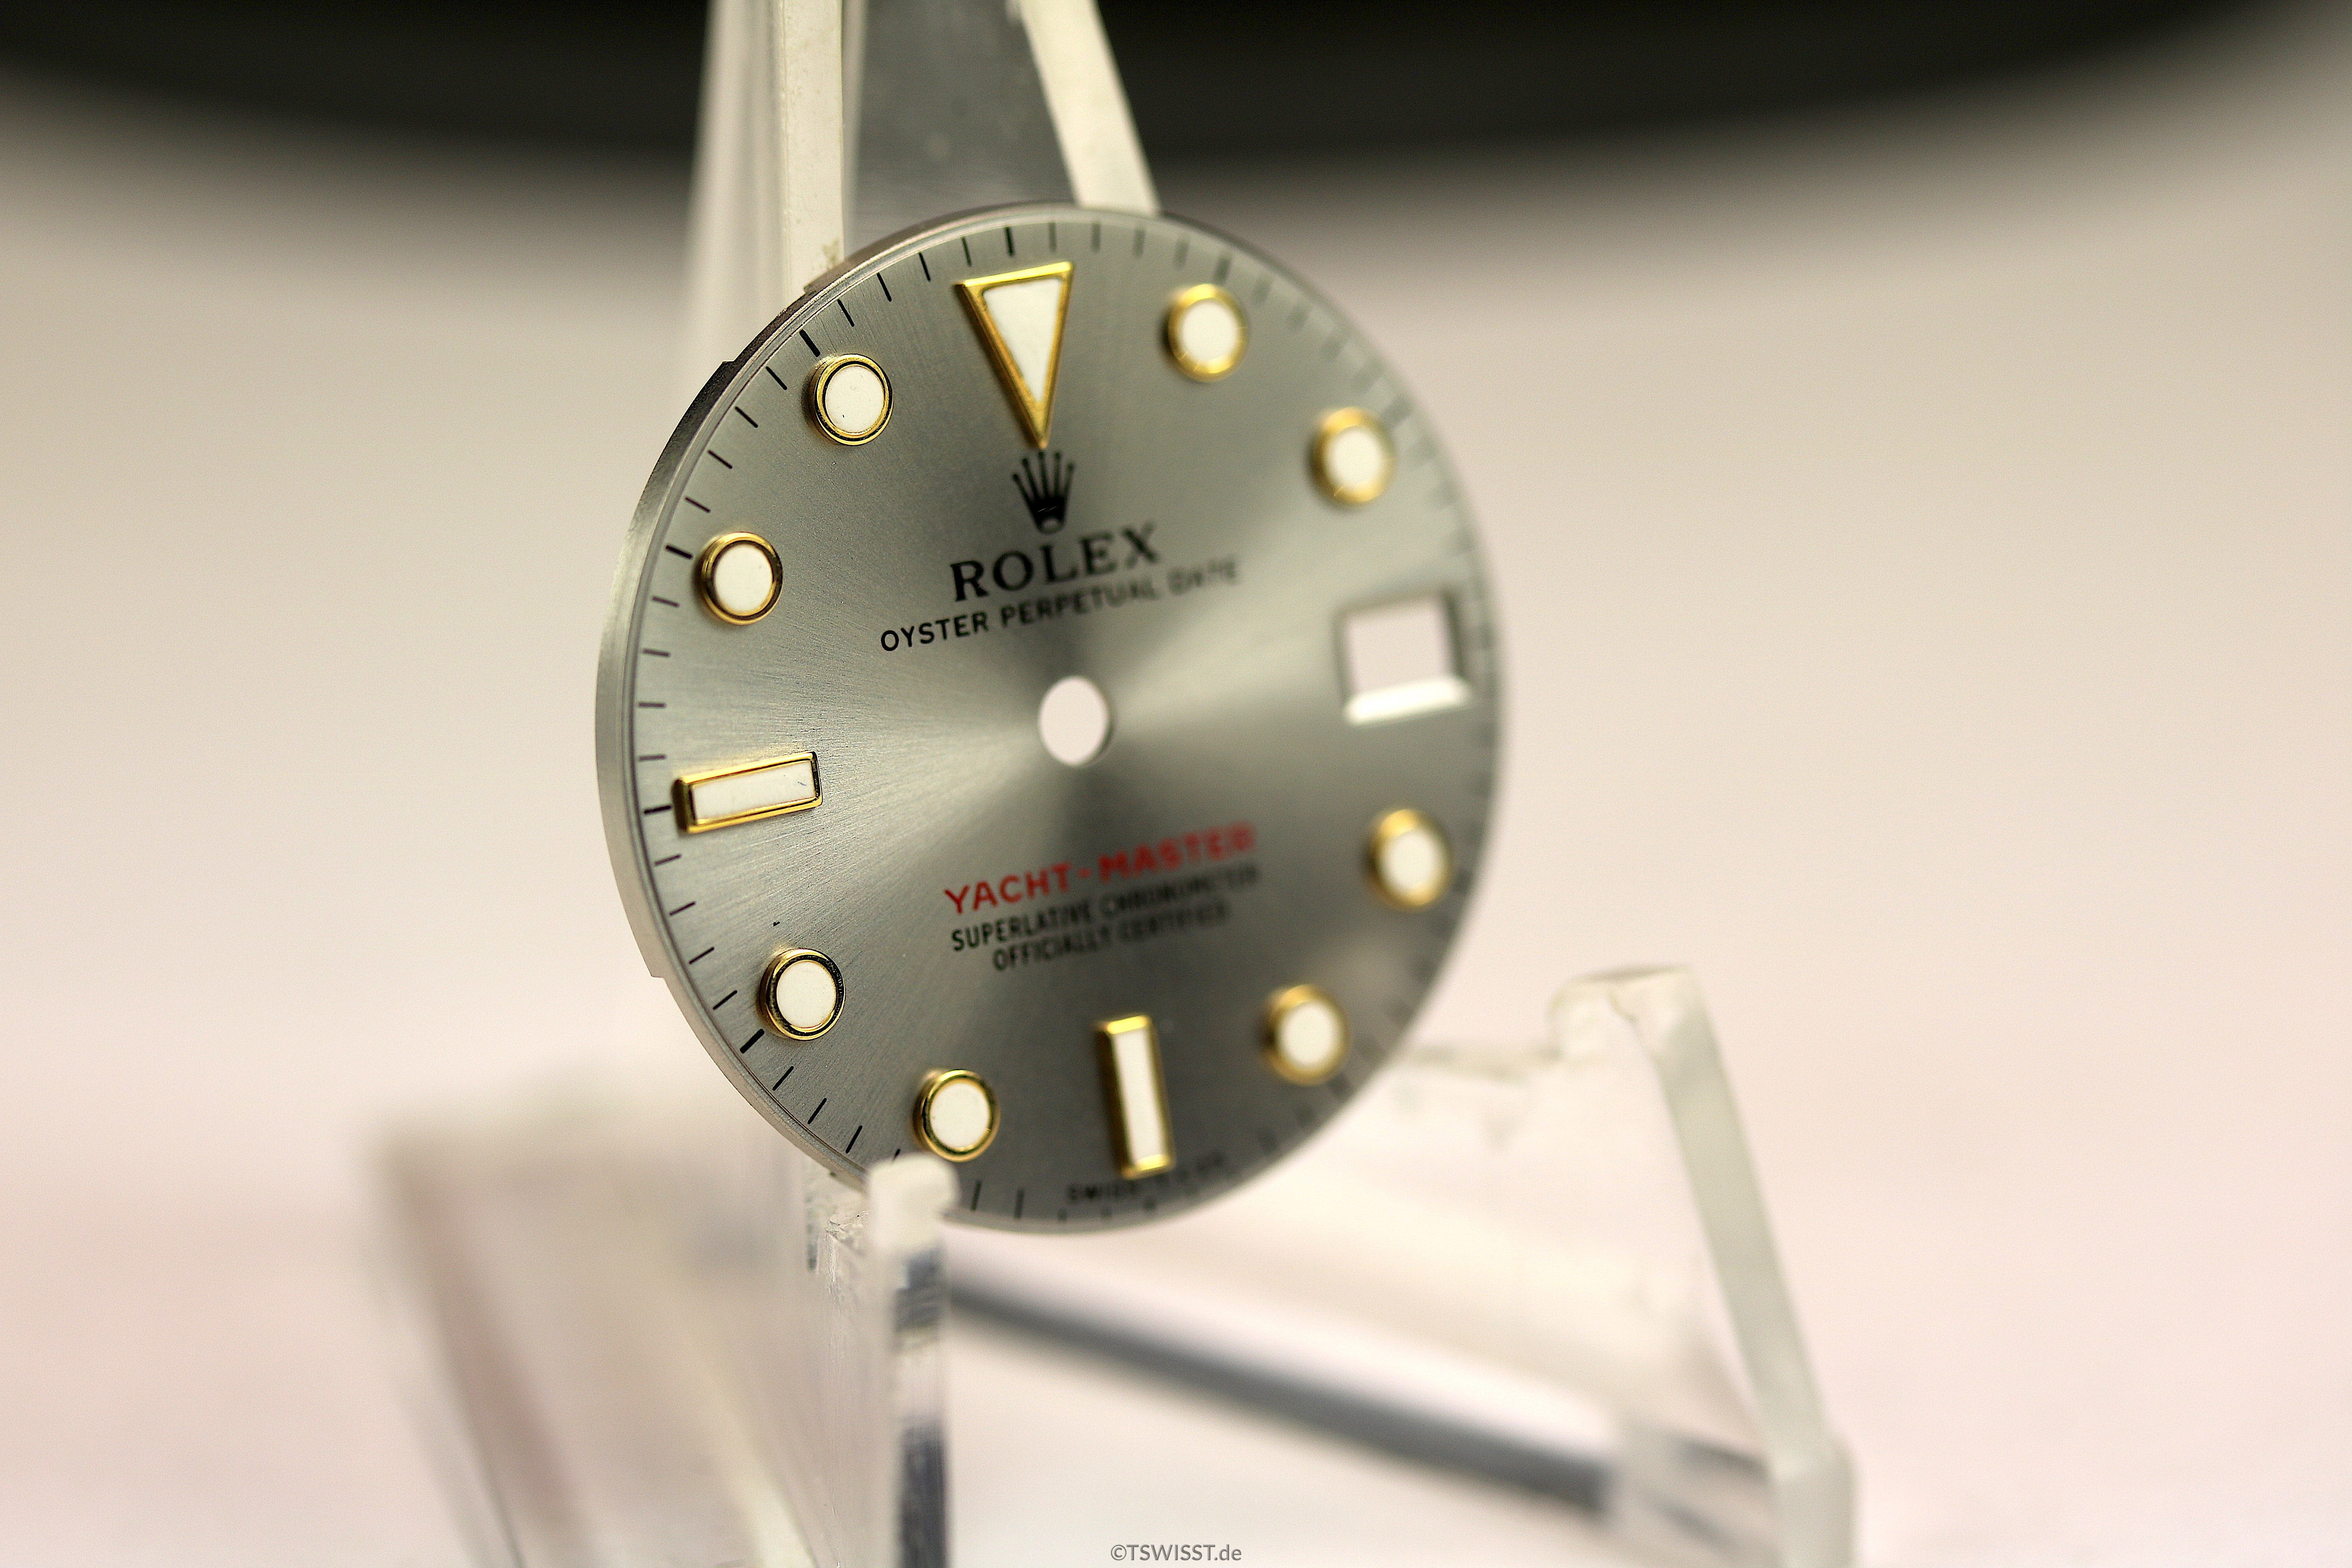 Rolex lady yacht master dial